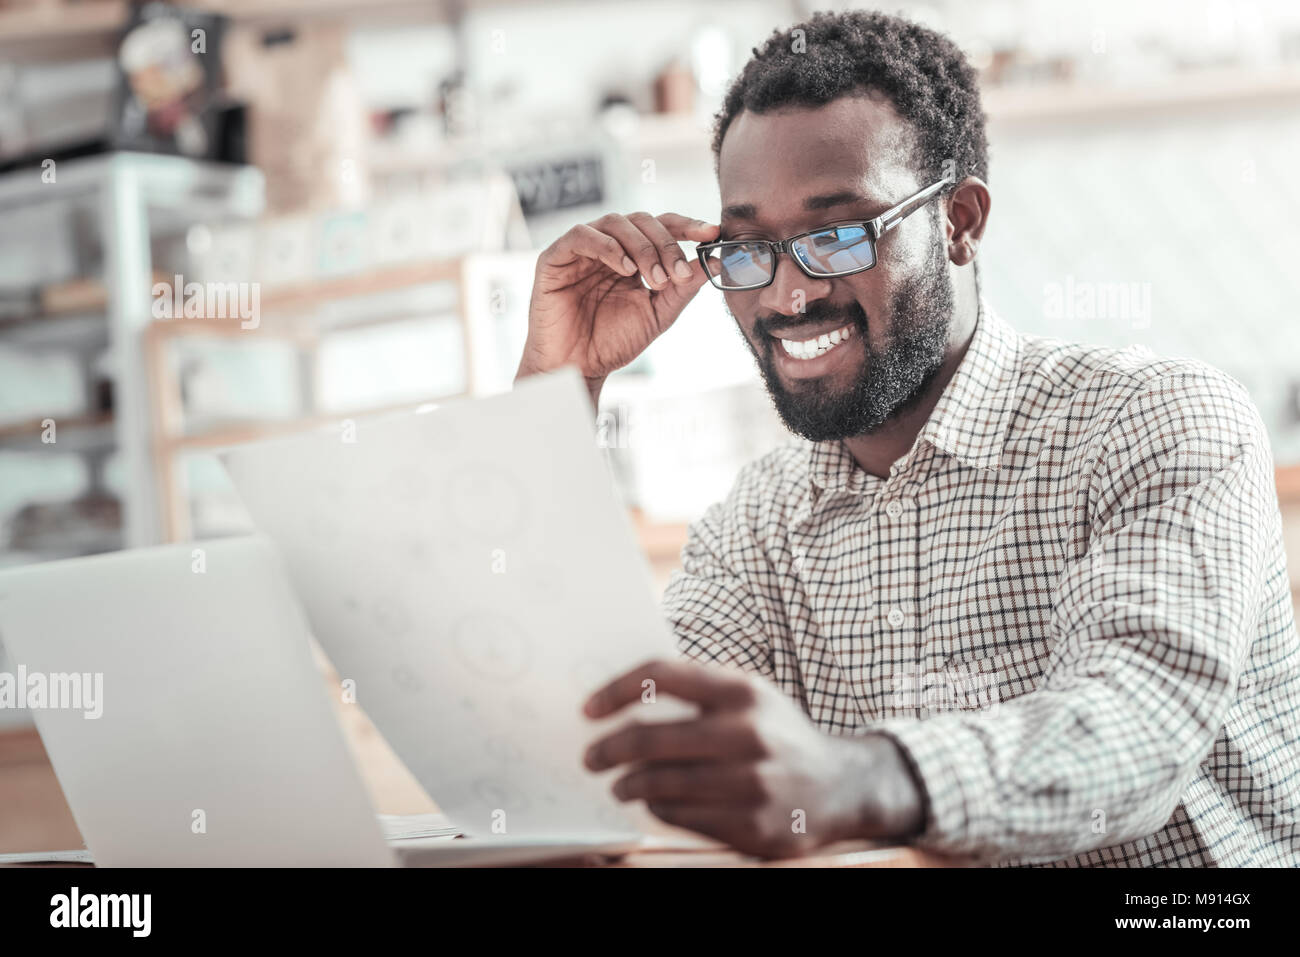 Cheerful nice man fixing his glasses - Stock Image